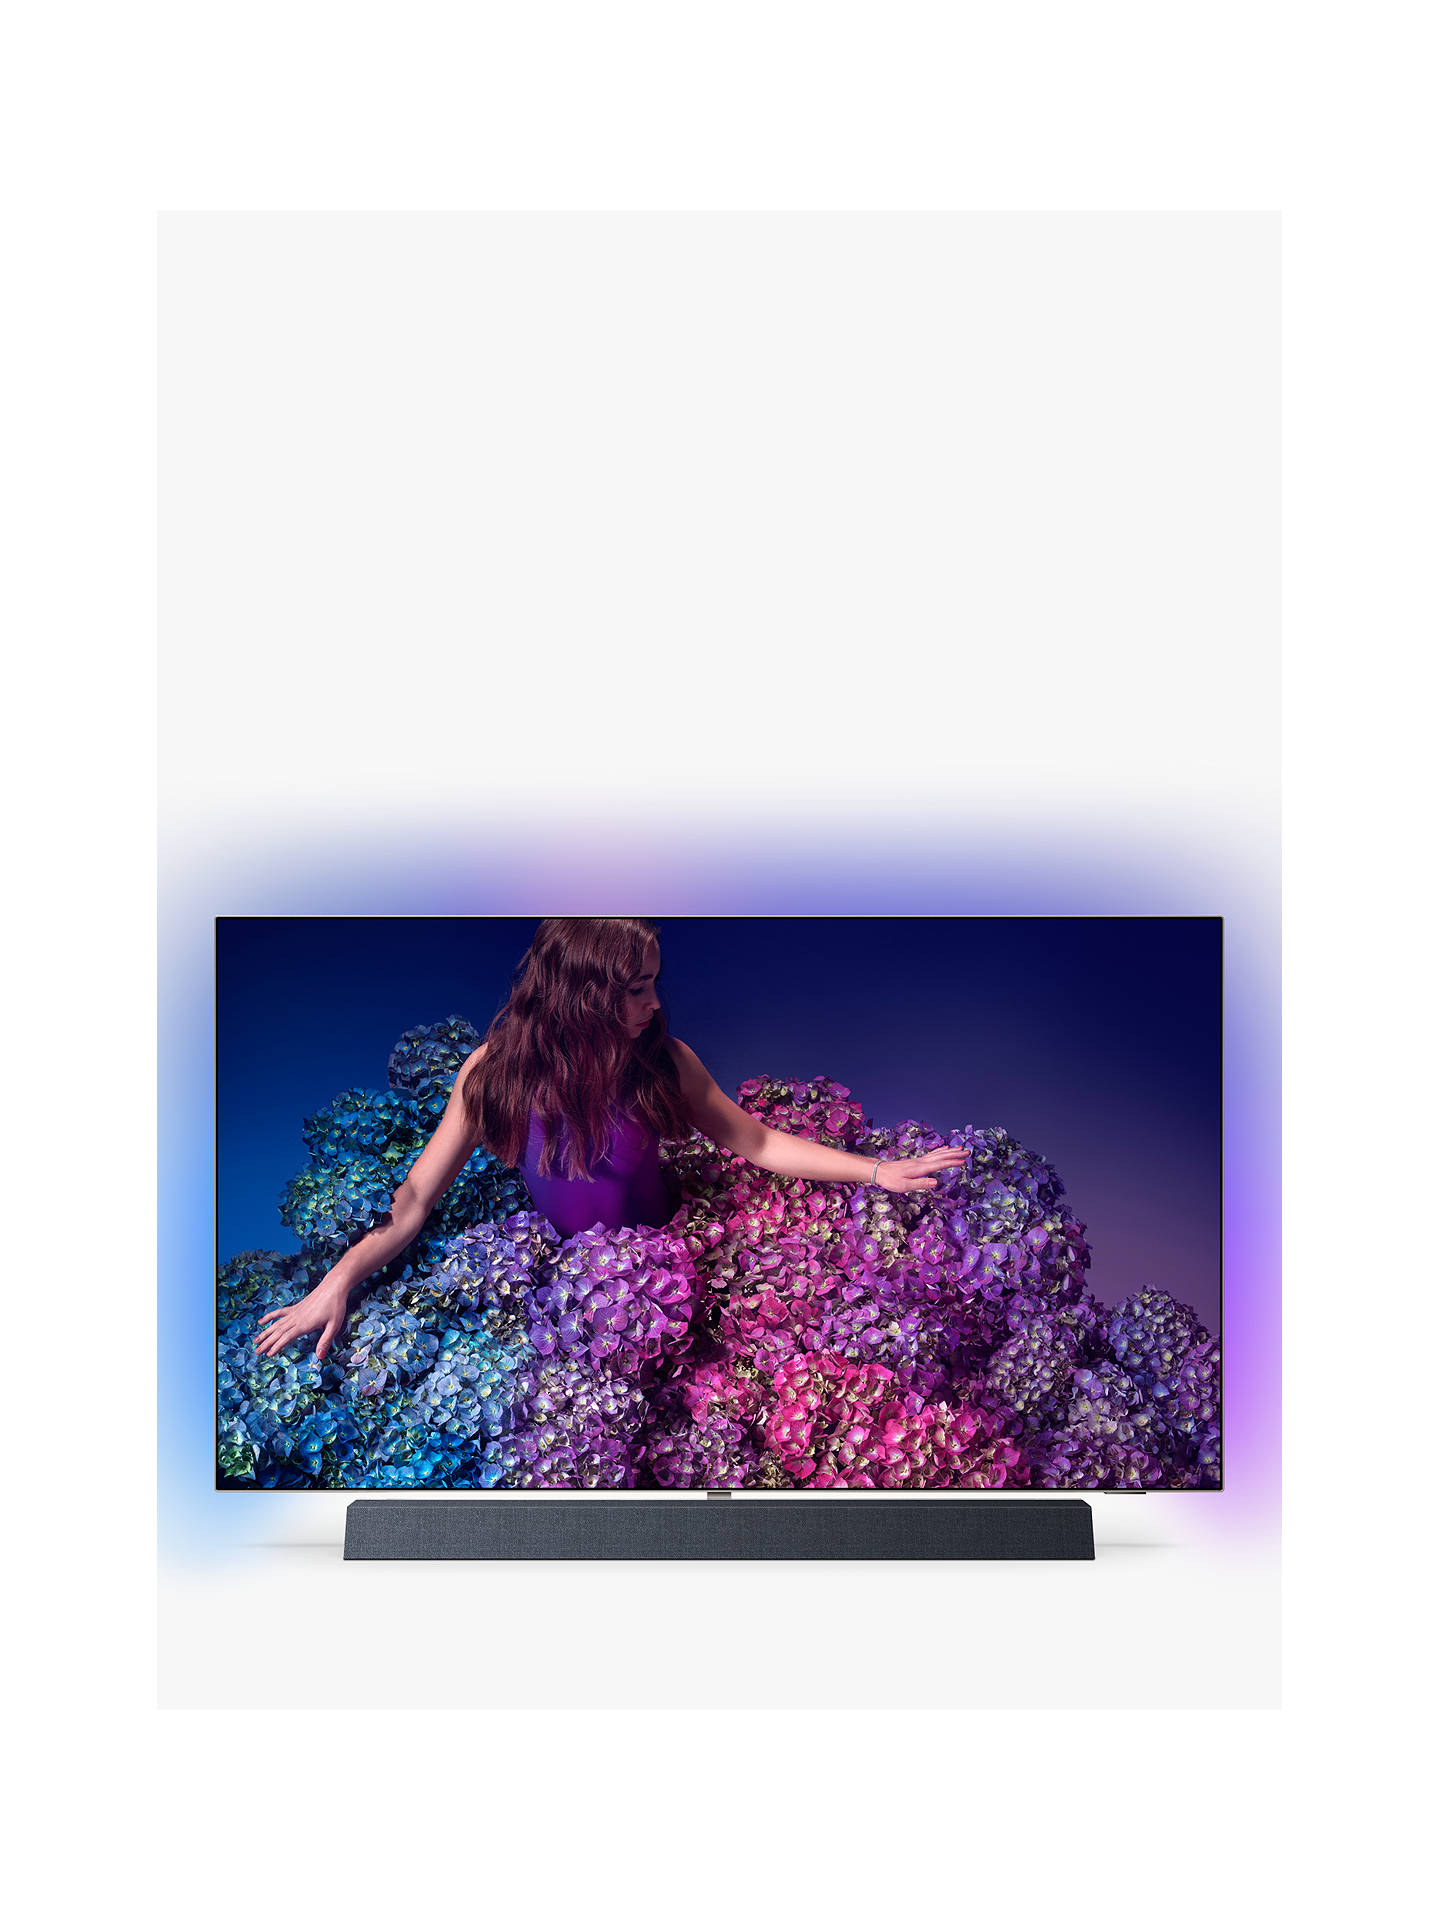 """Philips 55 Oled934 (2019) Oled Hdr 4 K Ultra Hd Smart Android Tv, 55"""" With Freeview Hd, Ambilight, & Bowers & Wilkins Integrated Sound Bar Stand, Uhd Premium Certified, Silver by Philips"""